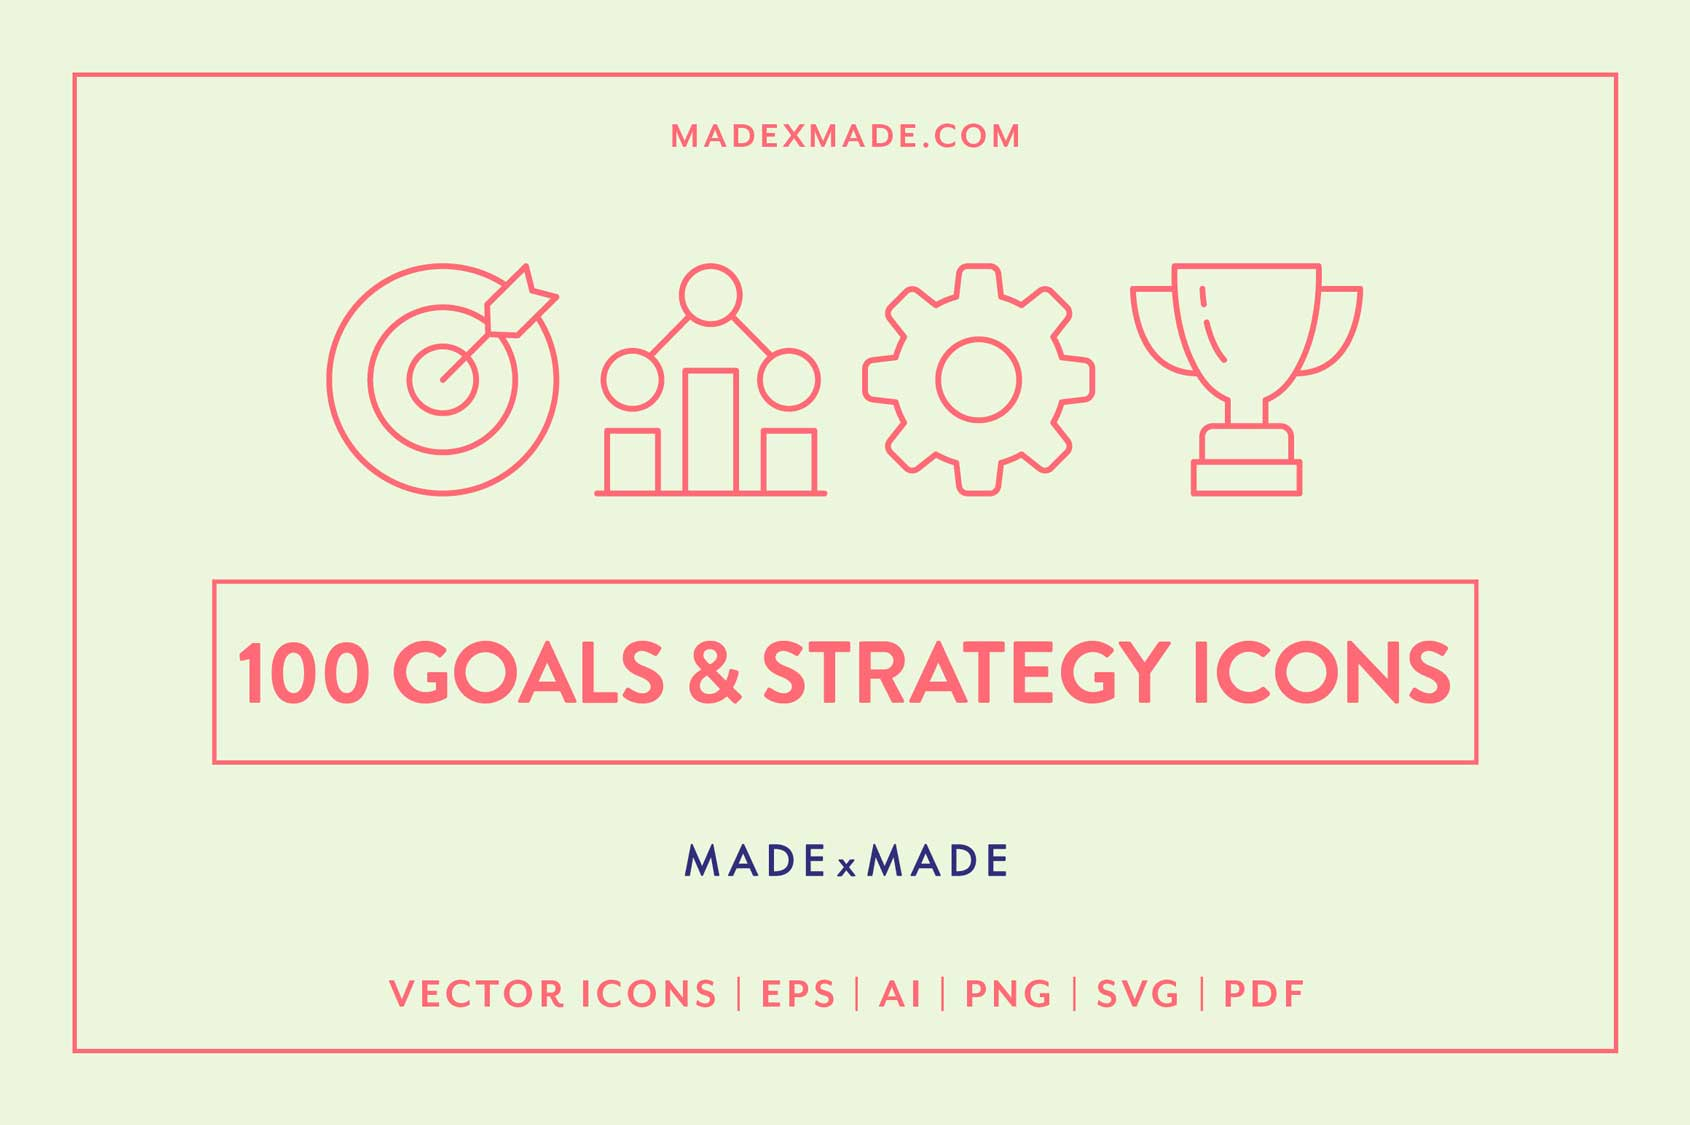 made x made icons goals strategy